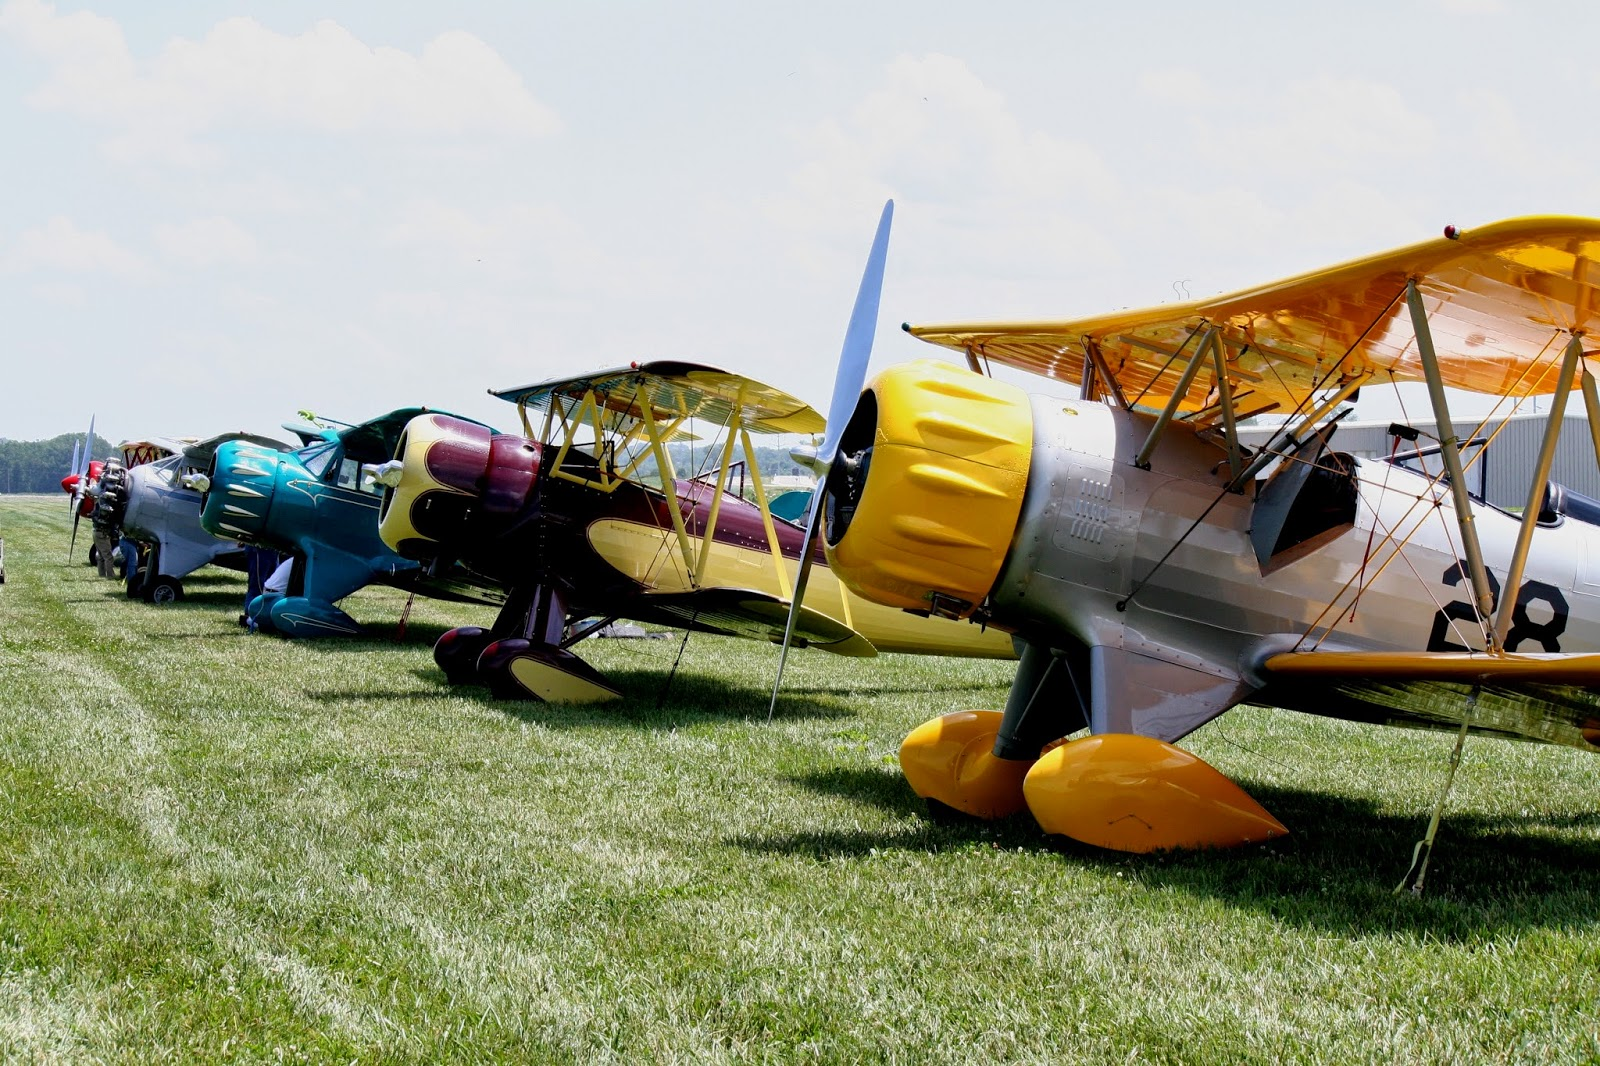 http://aeroexperience.blogspot.com/2014/06/american-waco-club-fly-in-participants.html